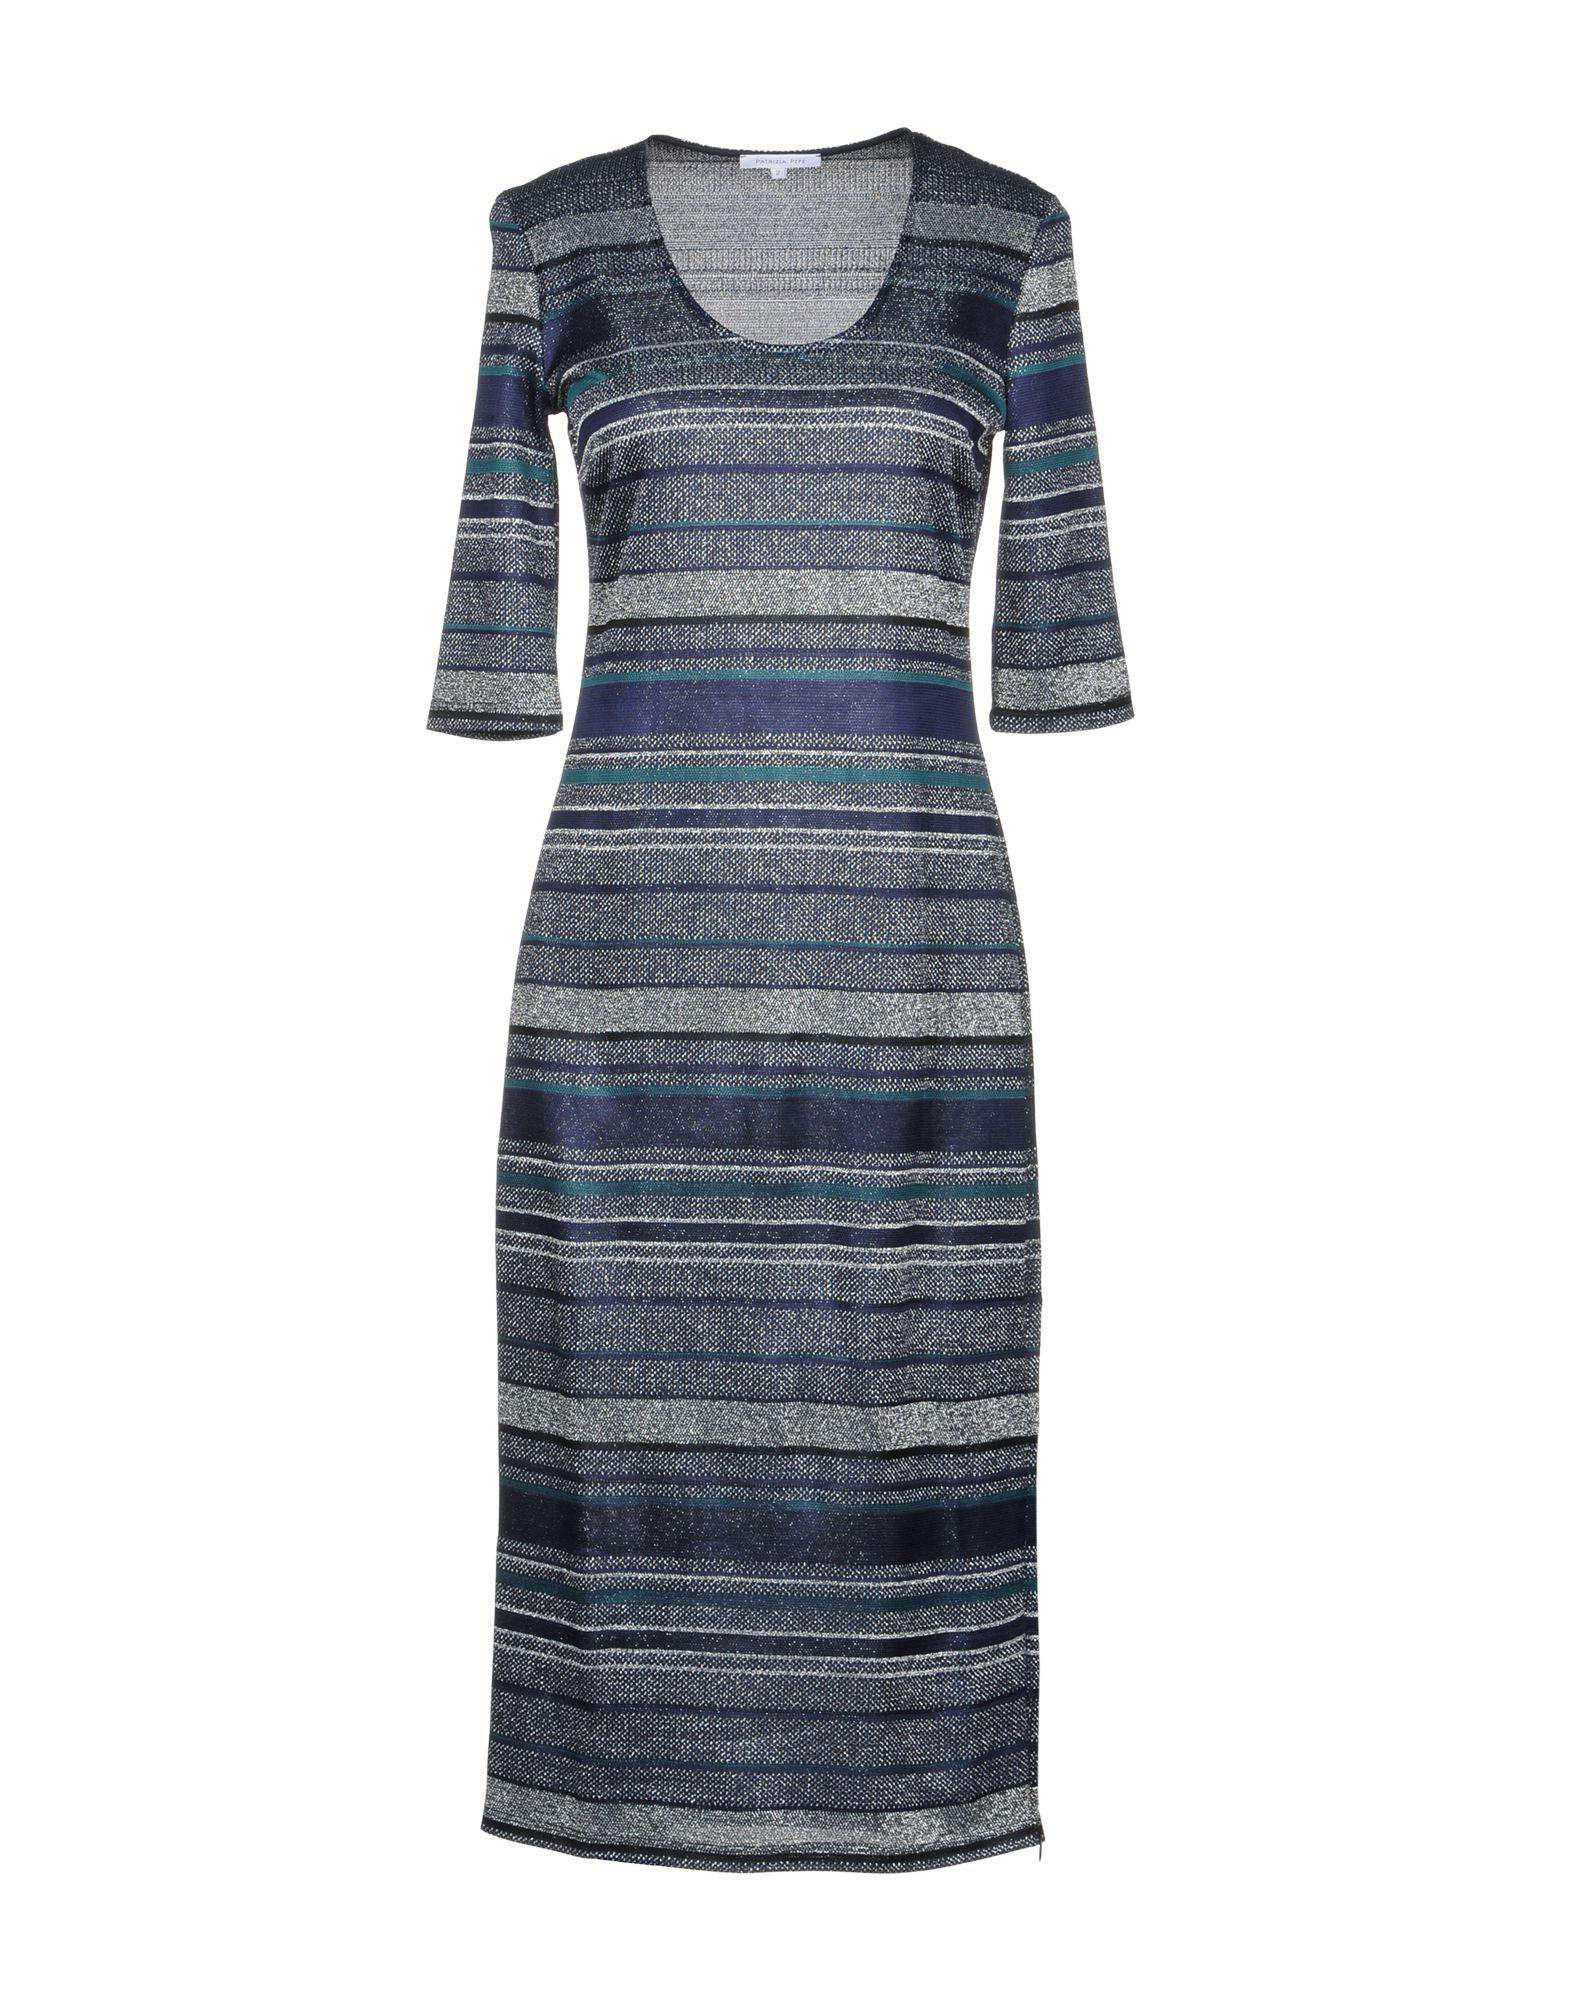 DRESSES - Knee-length dresses Patrizia Pepe hennhFk